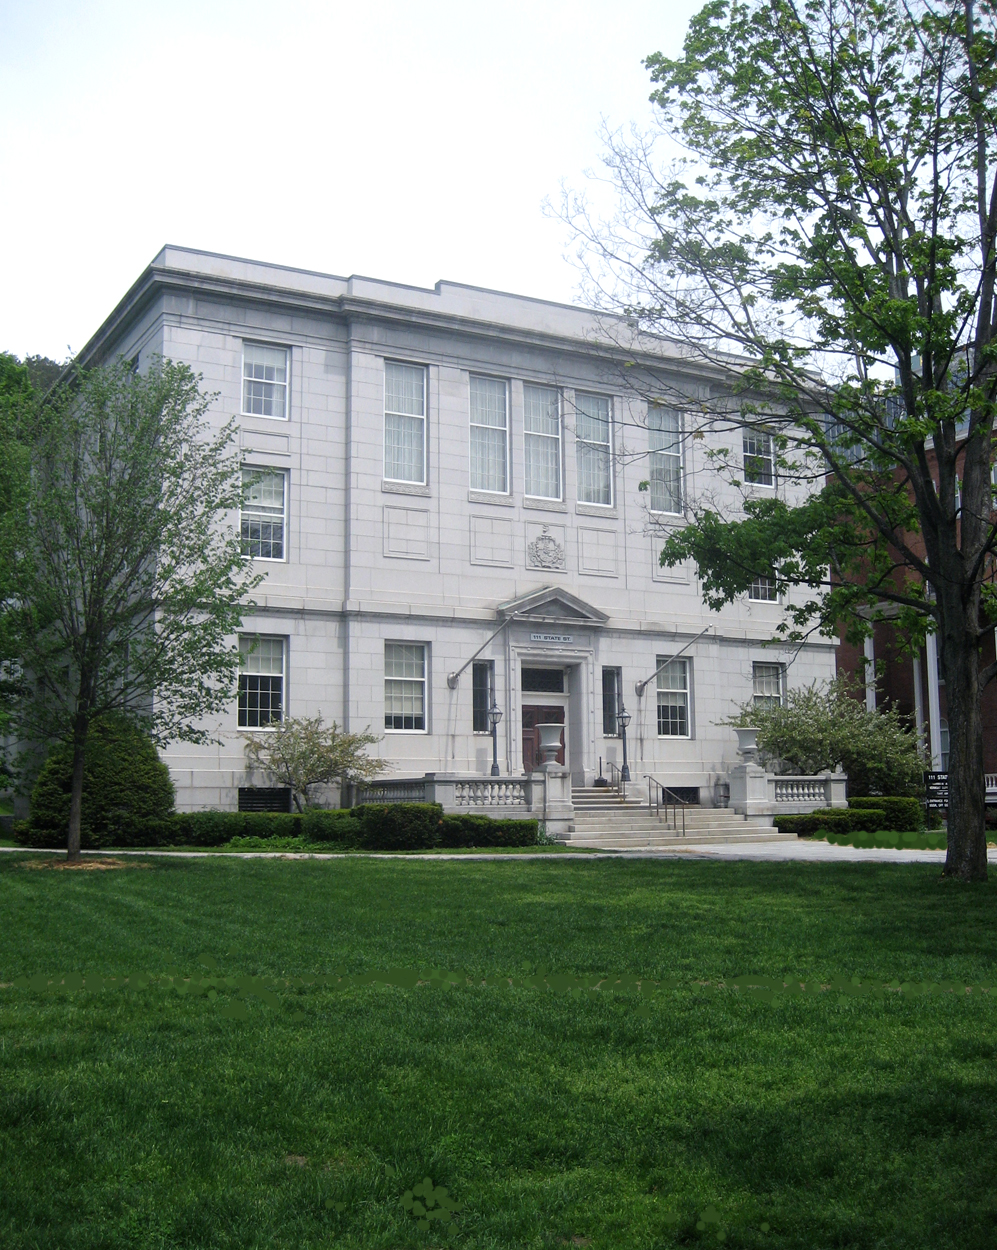 The Vermont Supreme Court's building in Montpelier.